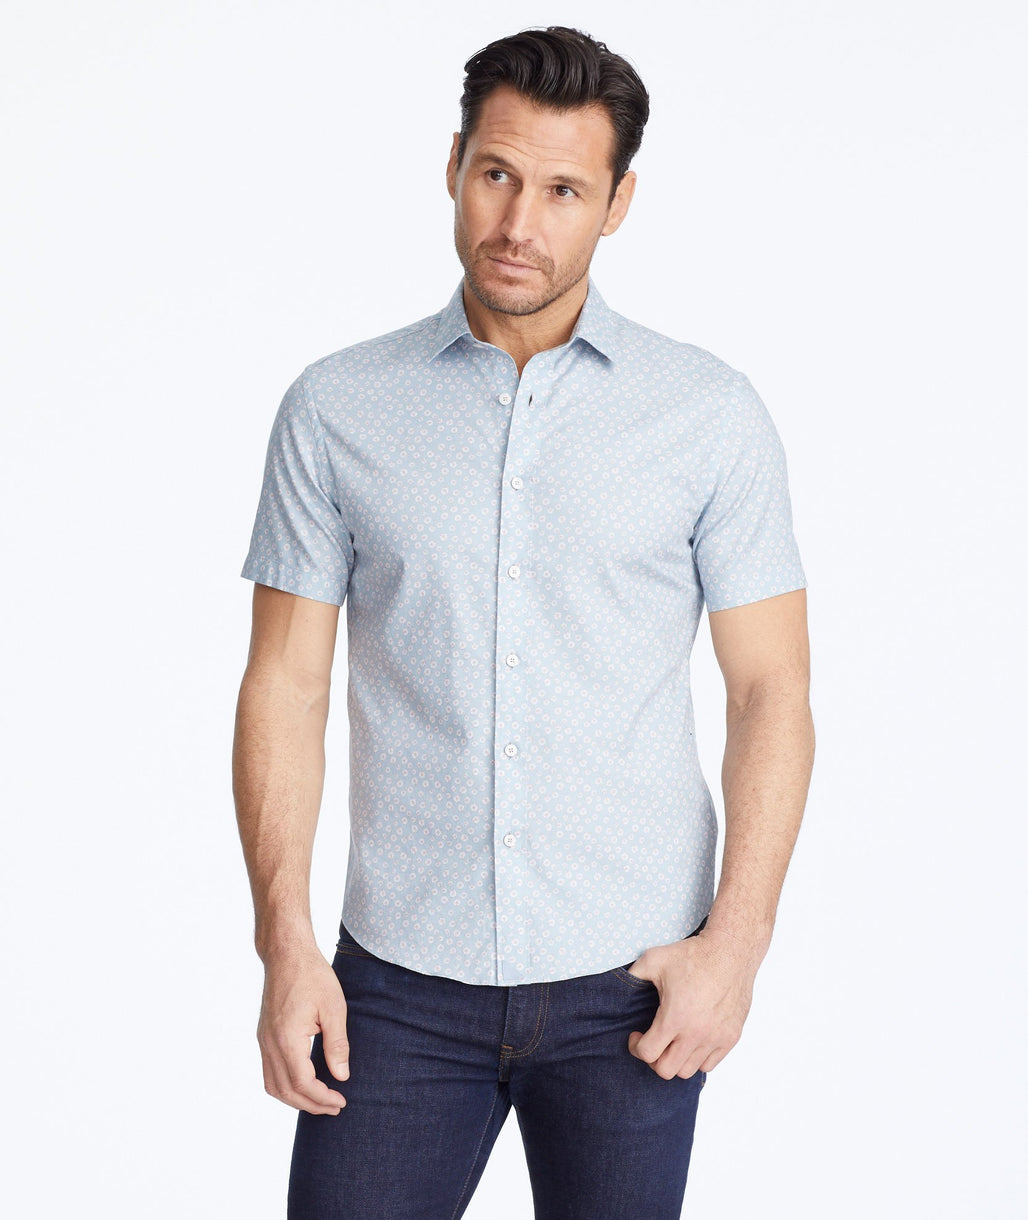 Model wearing a Light Grey Classic Cotton Short-Sleeve Cousino Shirt